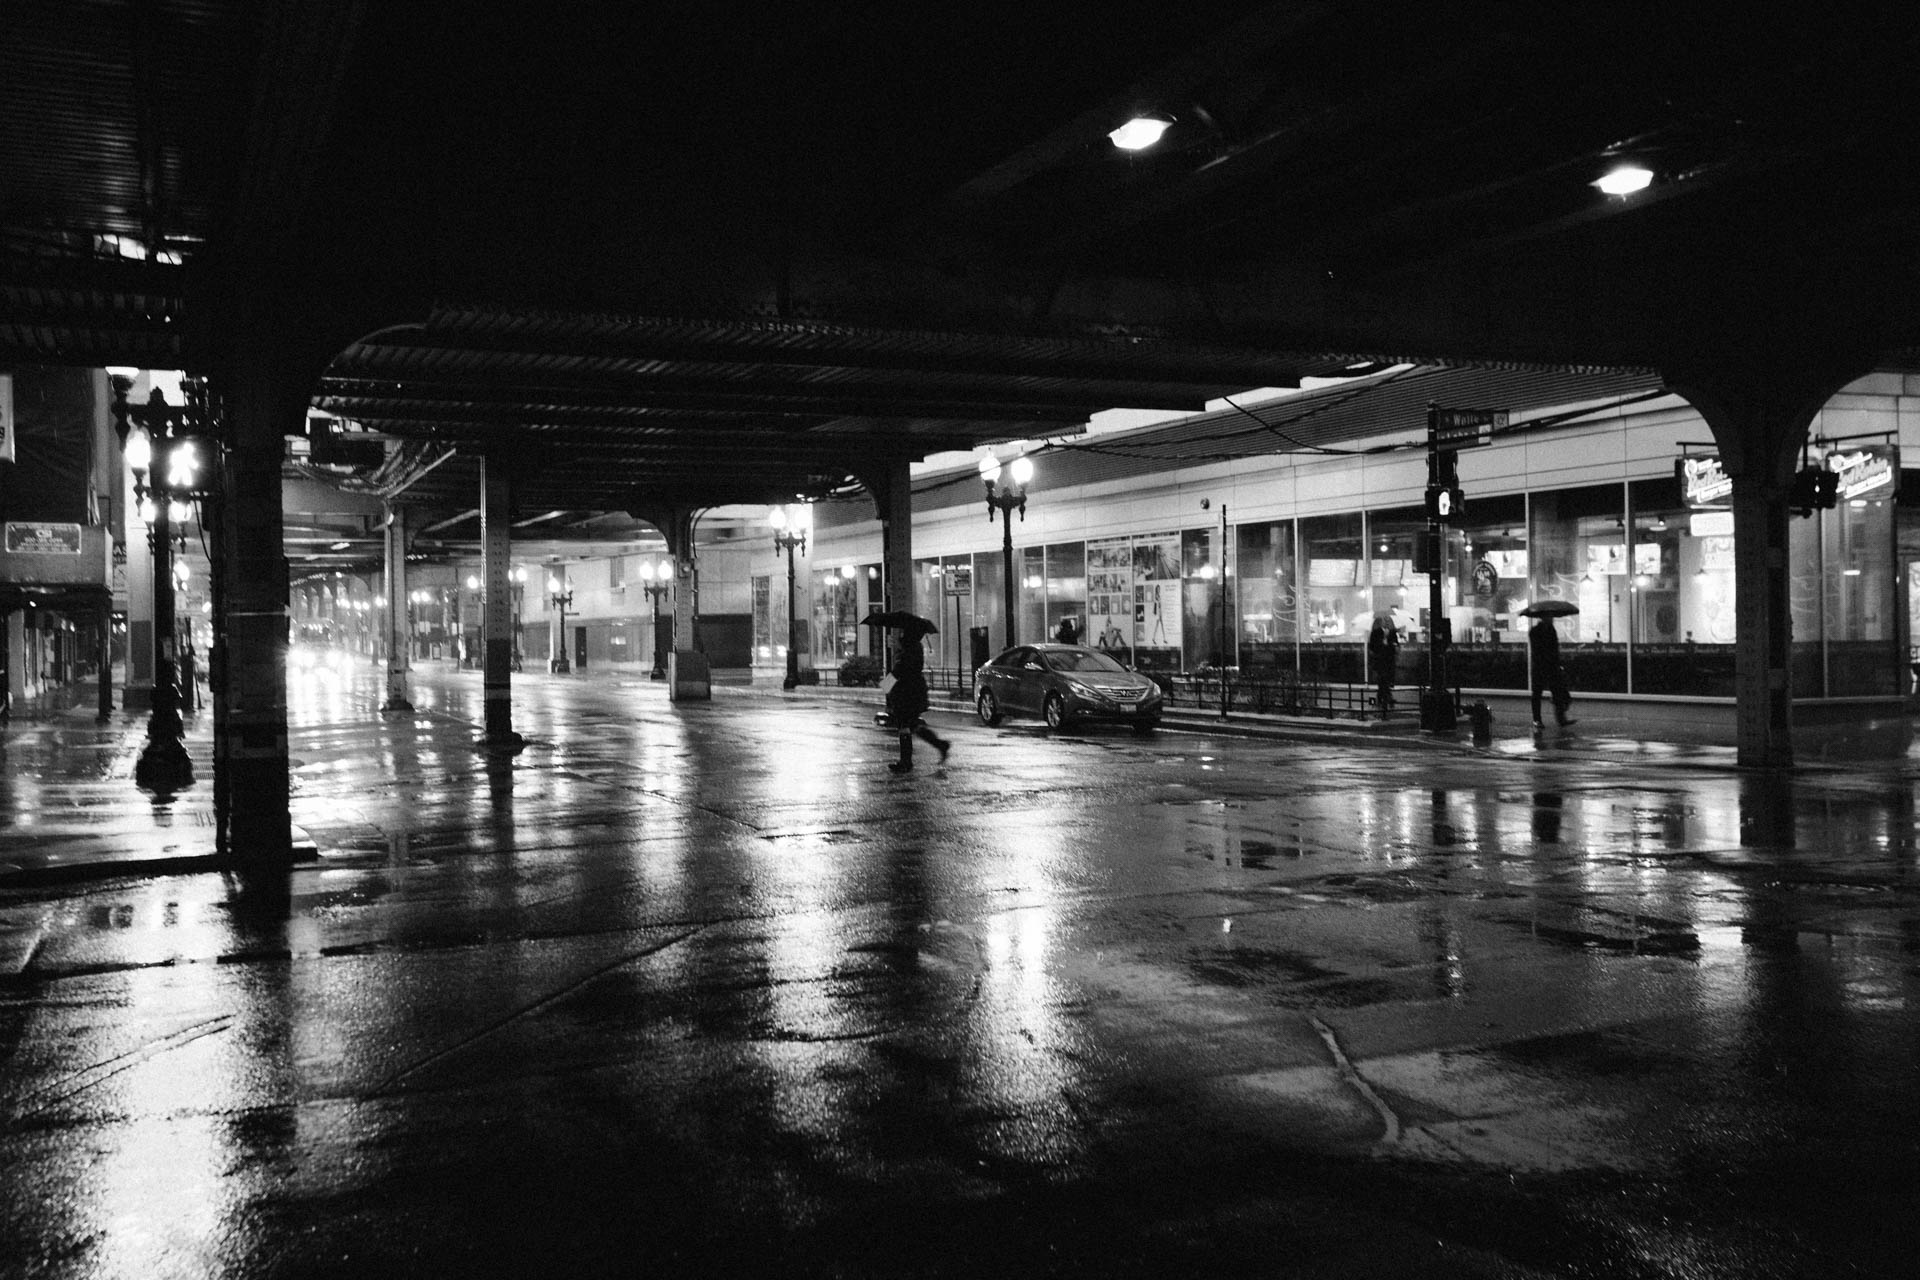 cta_chicago_street_rain_umbrella_5505untitled